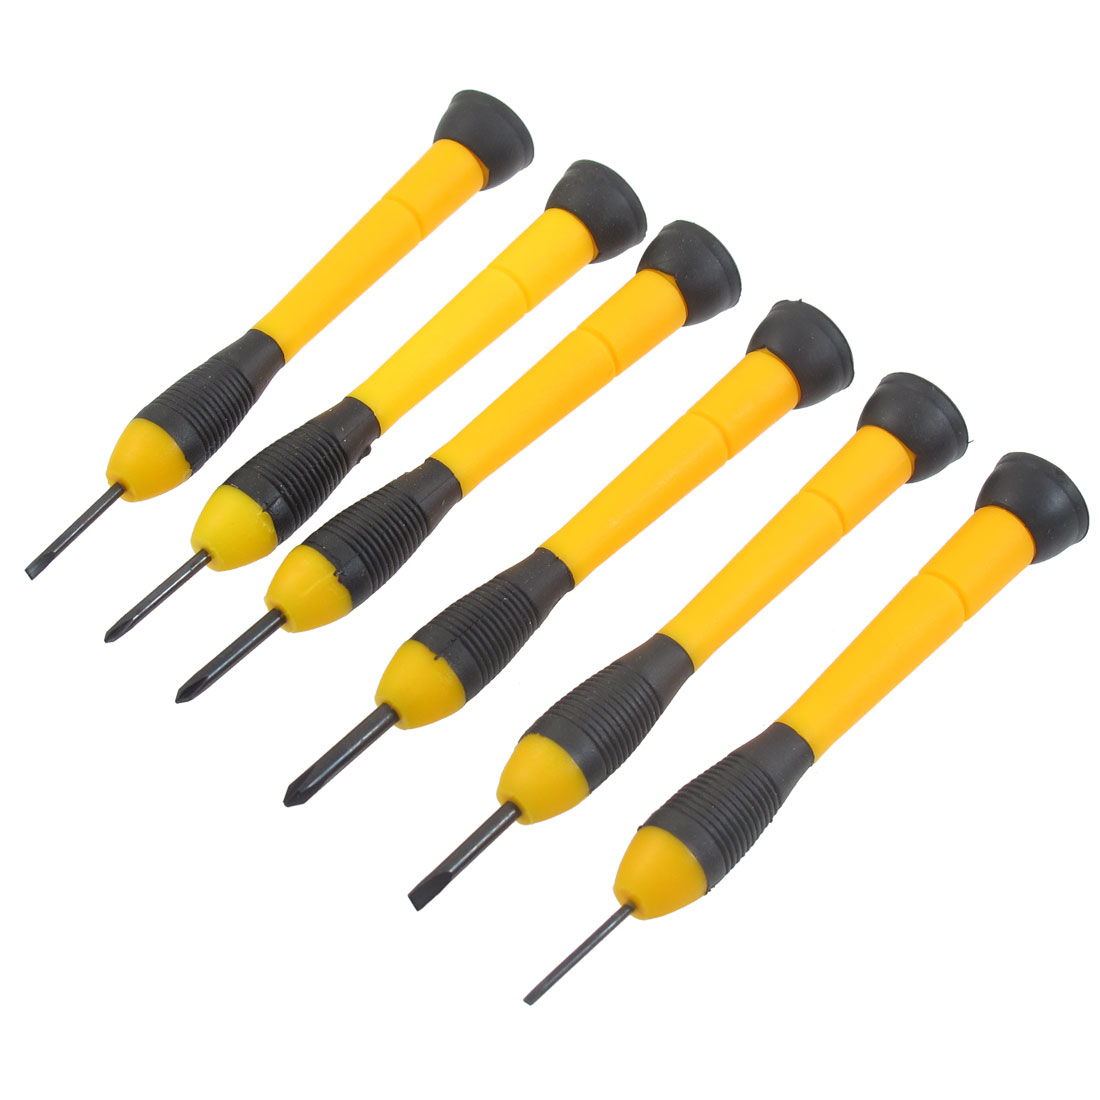 6 Pcs Yellow Plastic Handle Watch Glasses Eyeglasses Repair Screwdrivers Set